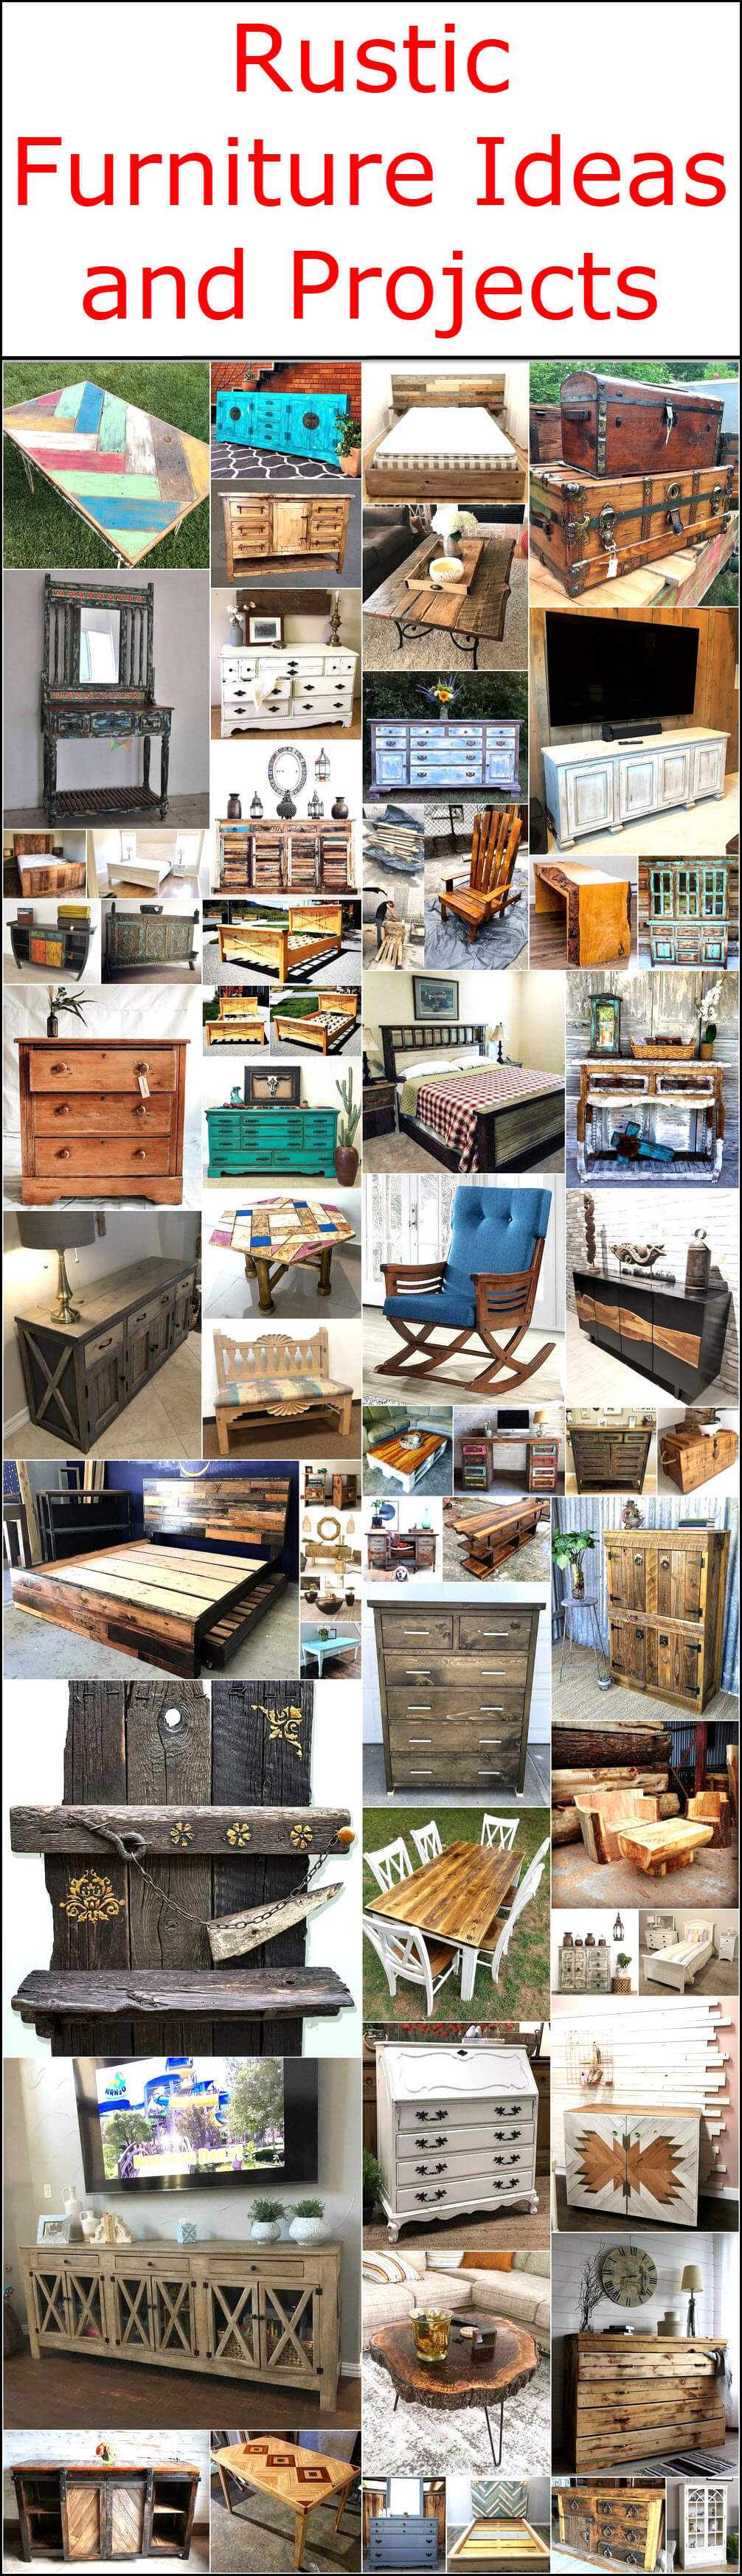 Rustic Furniture Ideas and Projects